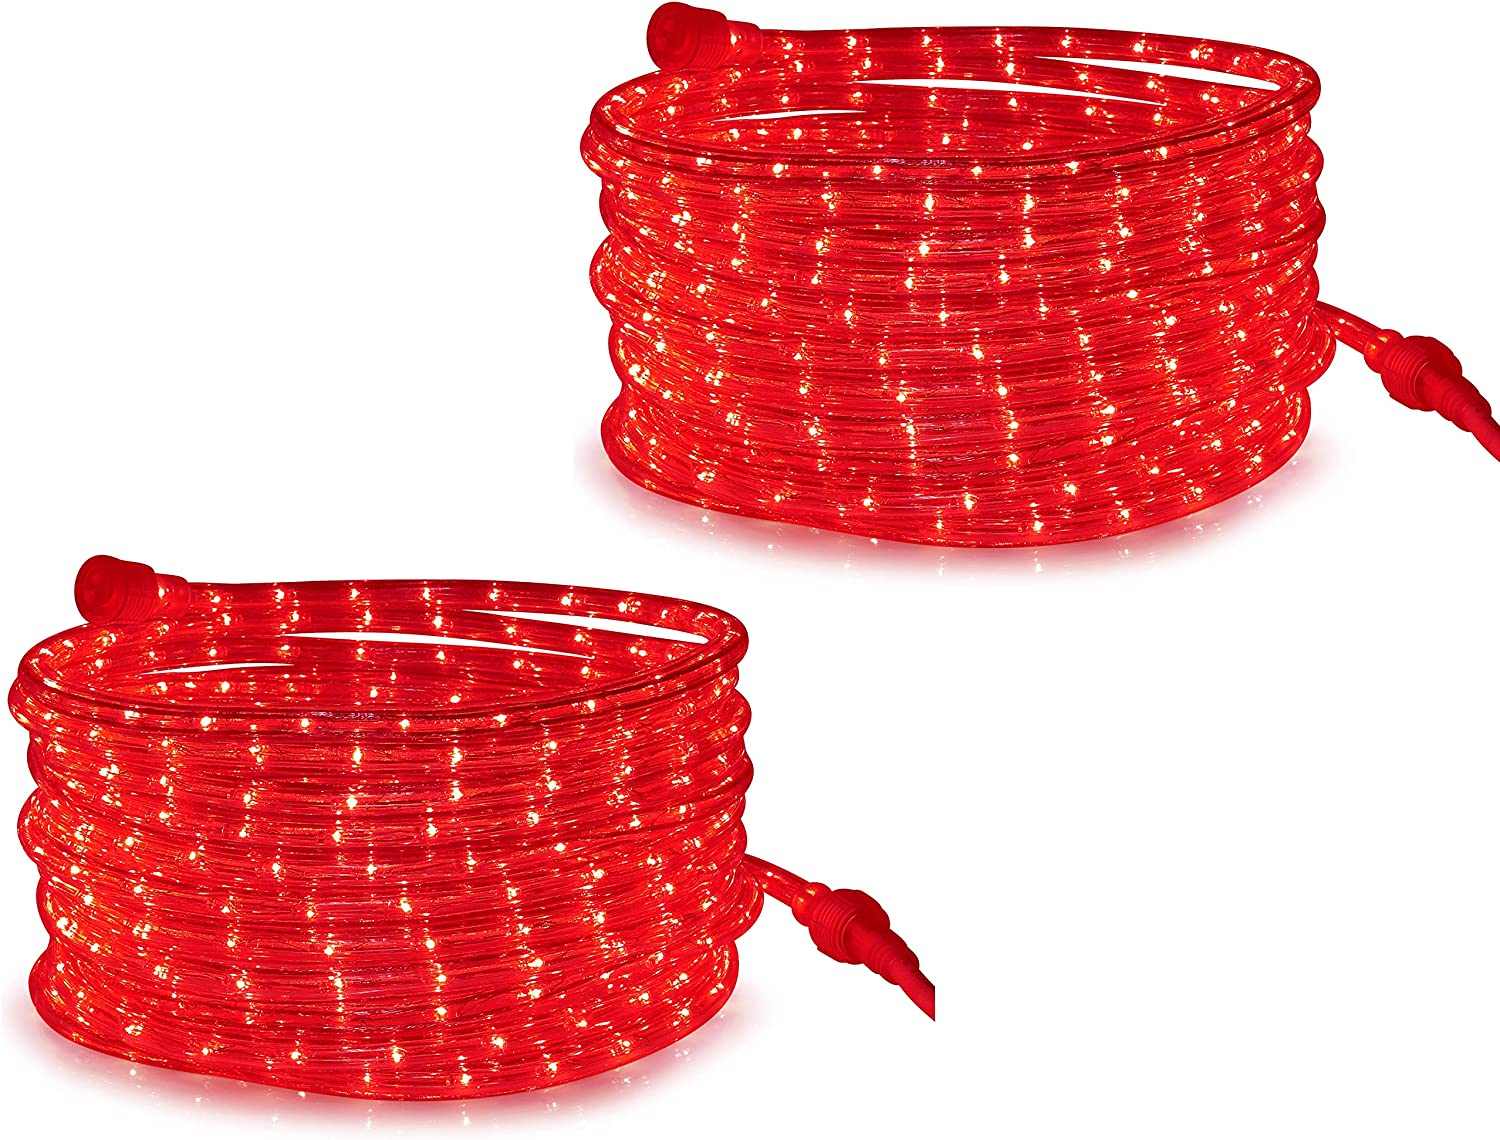 Tupkee LED Boston Mall Rope Light Red - 24 Outd m and for Indoor Feet 7.3 High quality